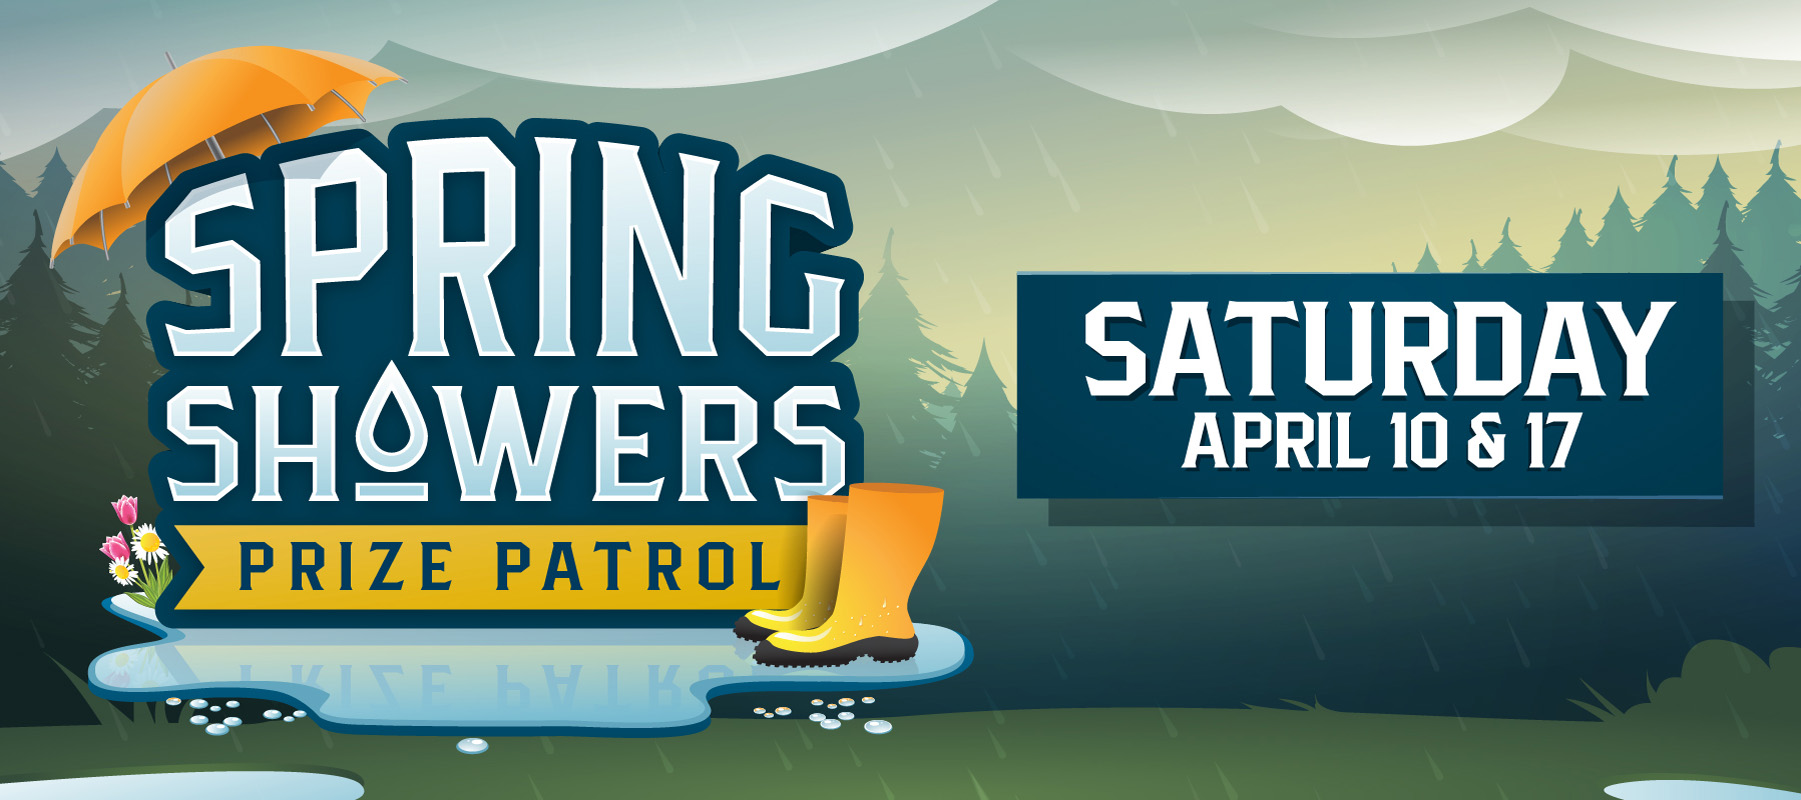 Spring Showers Prize Patrol